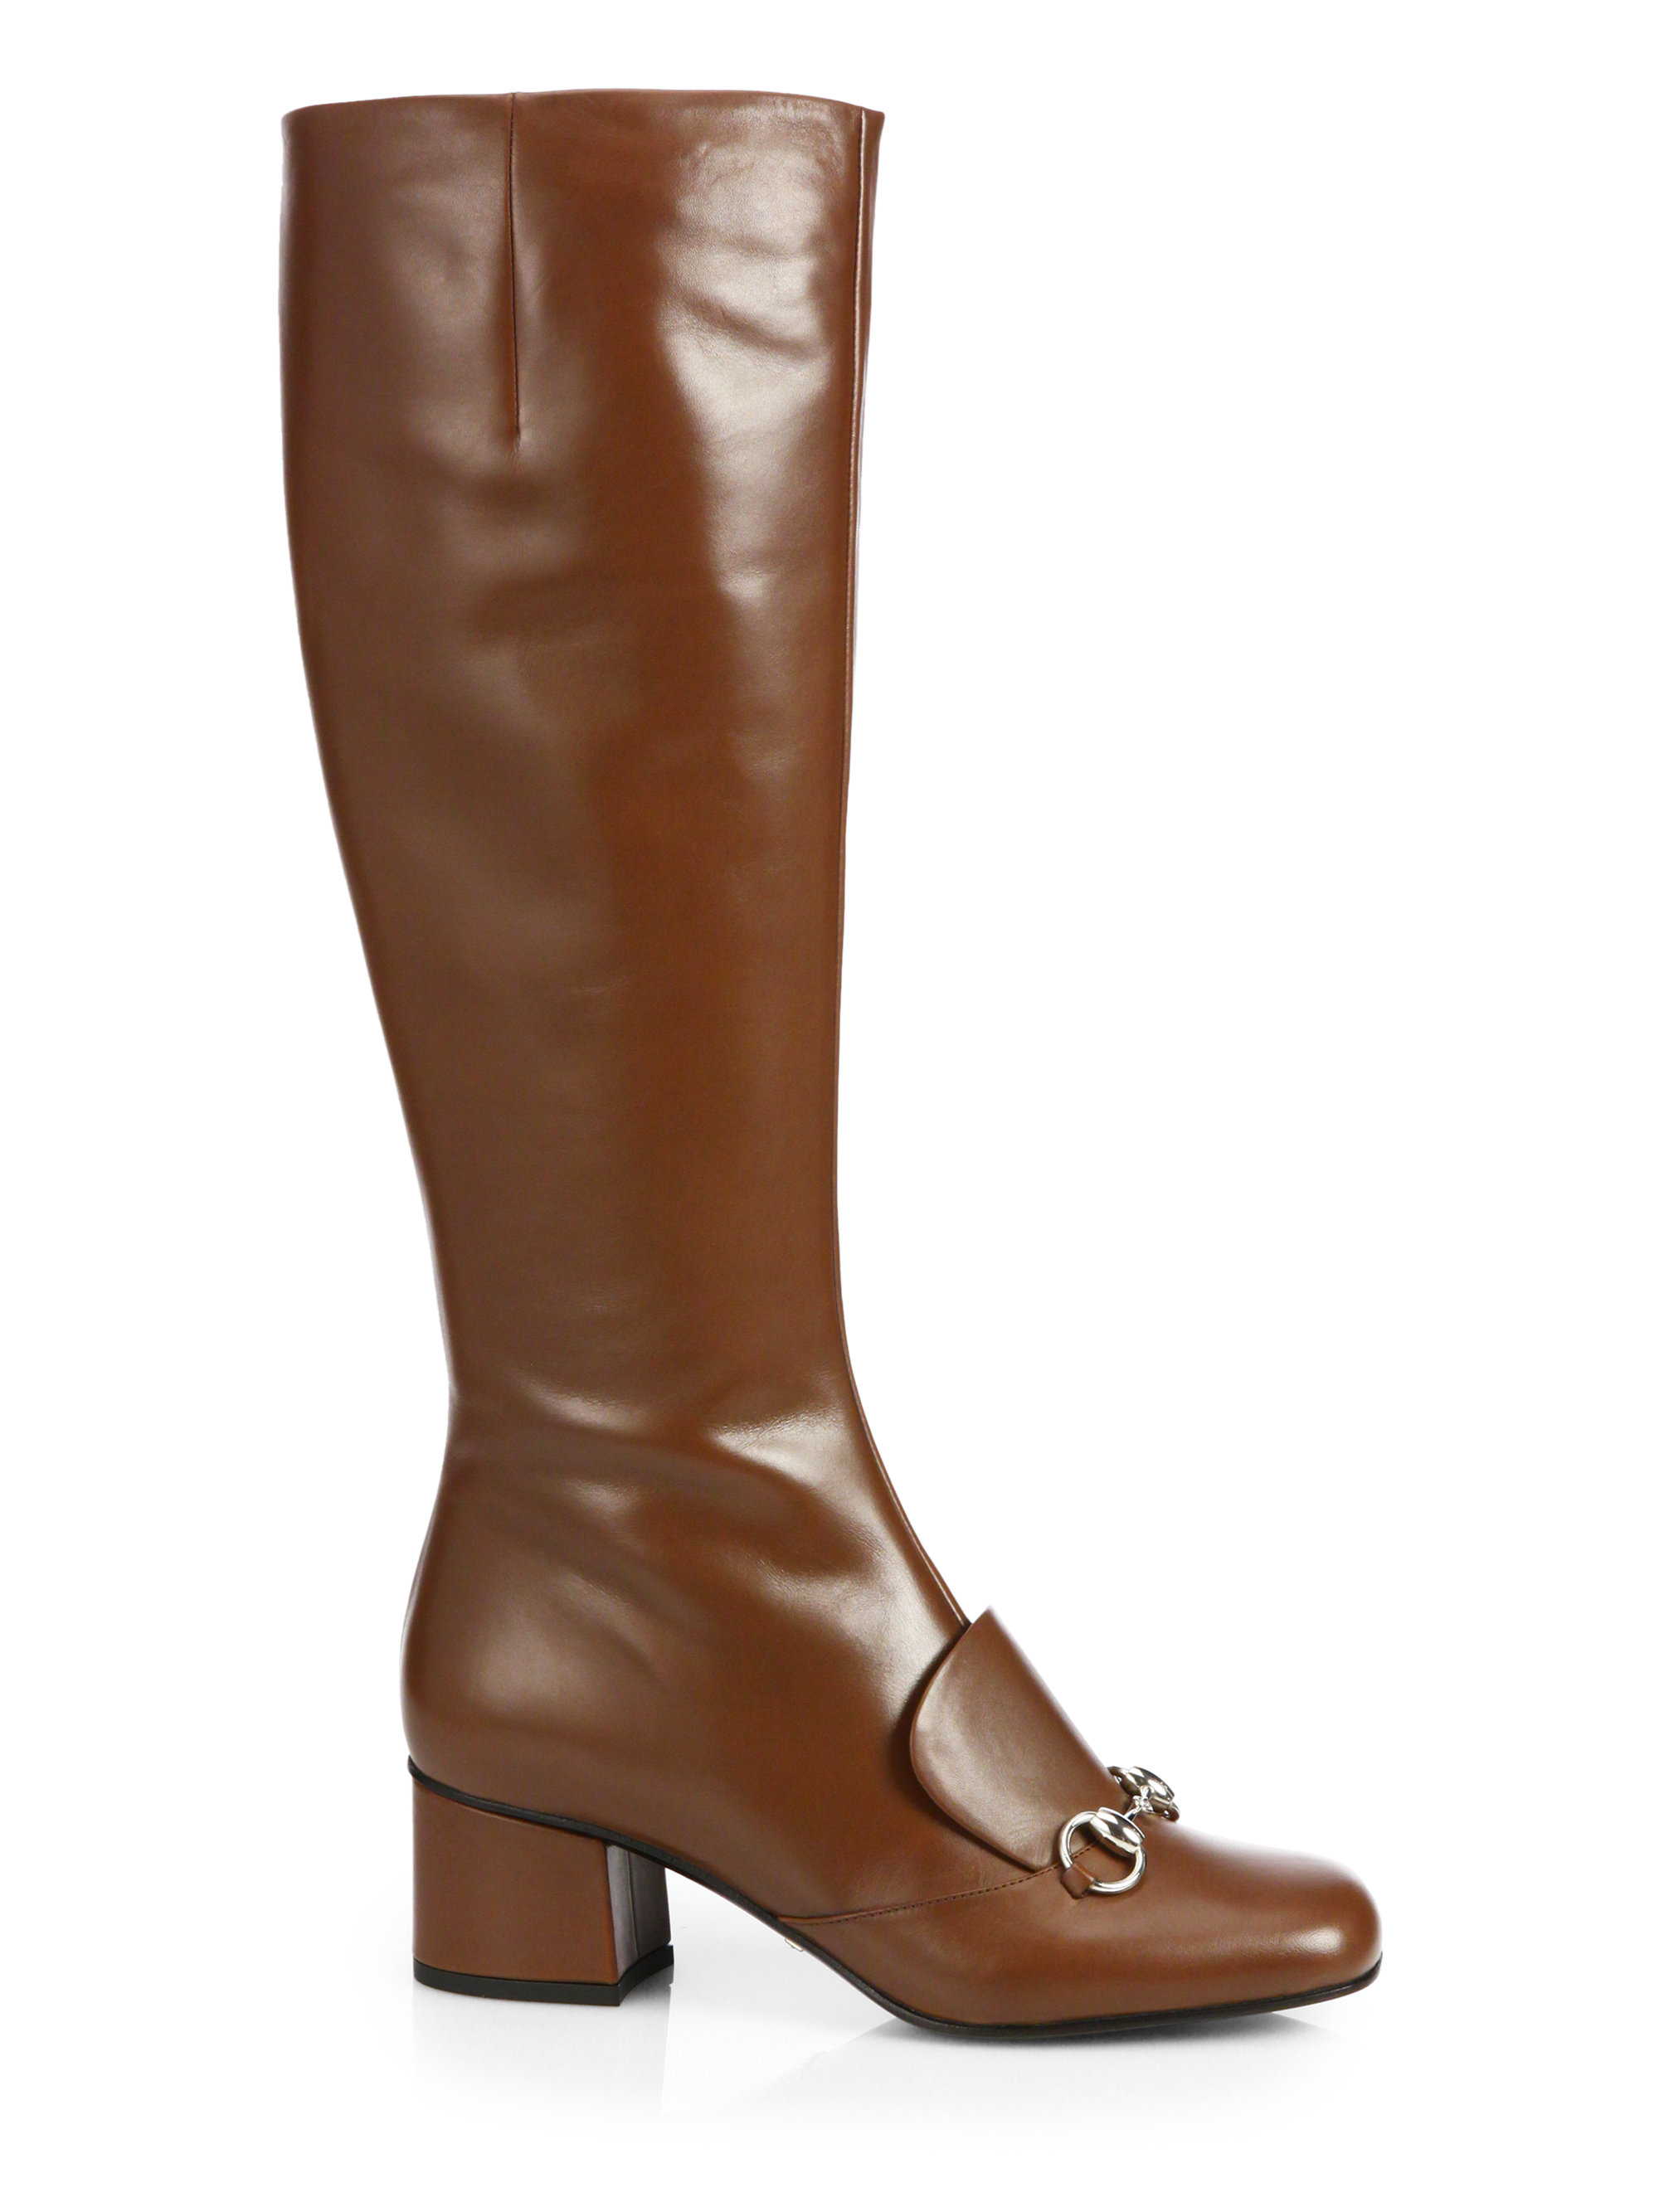 gucci lilian leather horsebit boots in brown almond